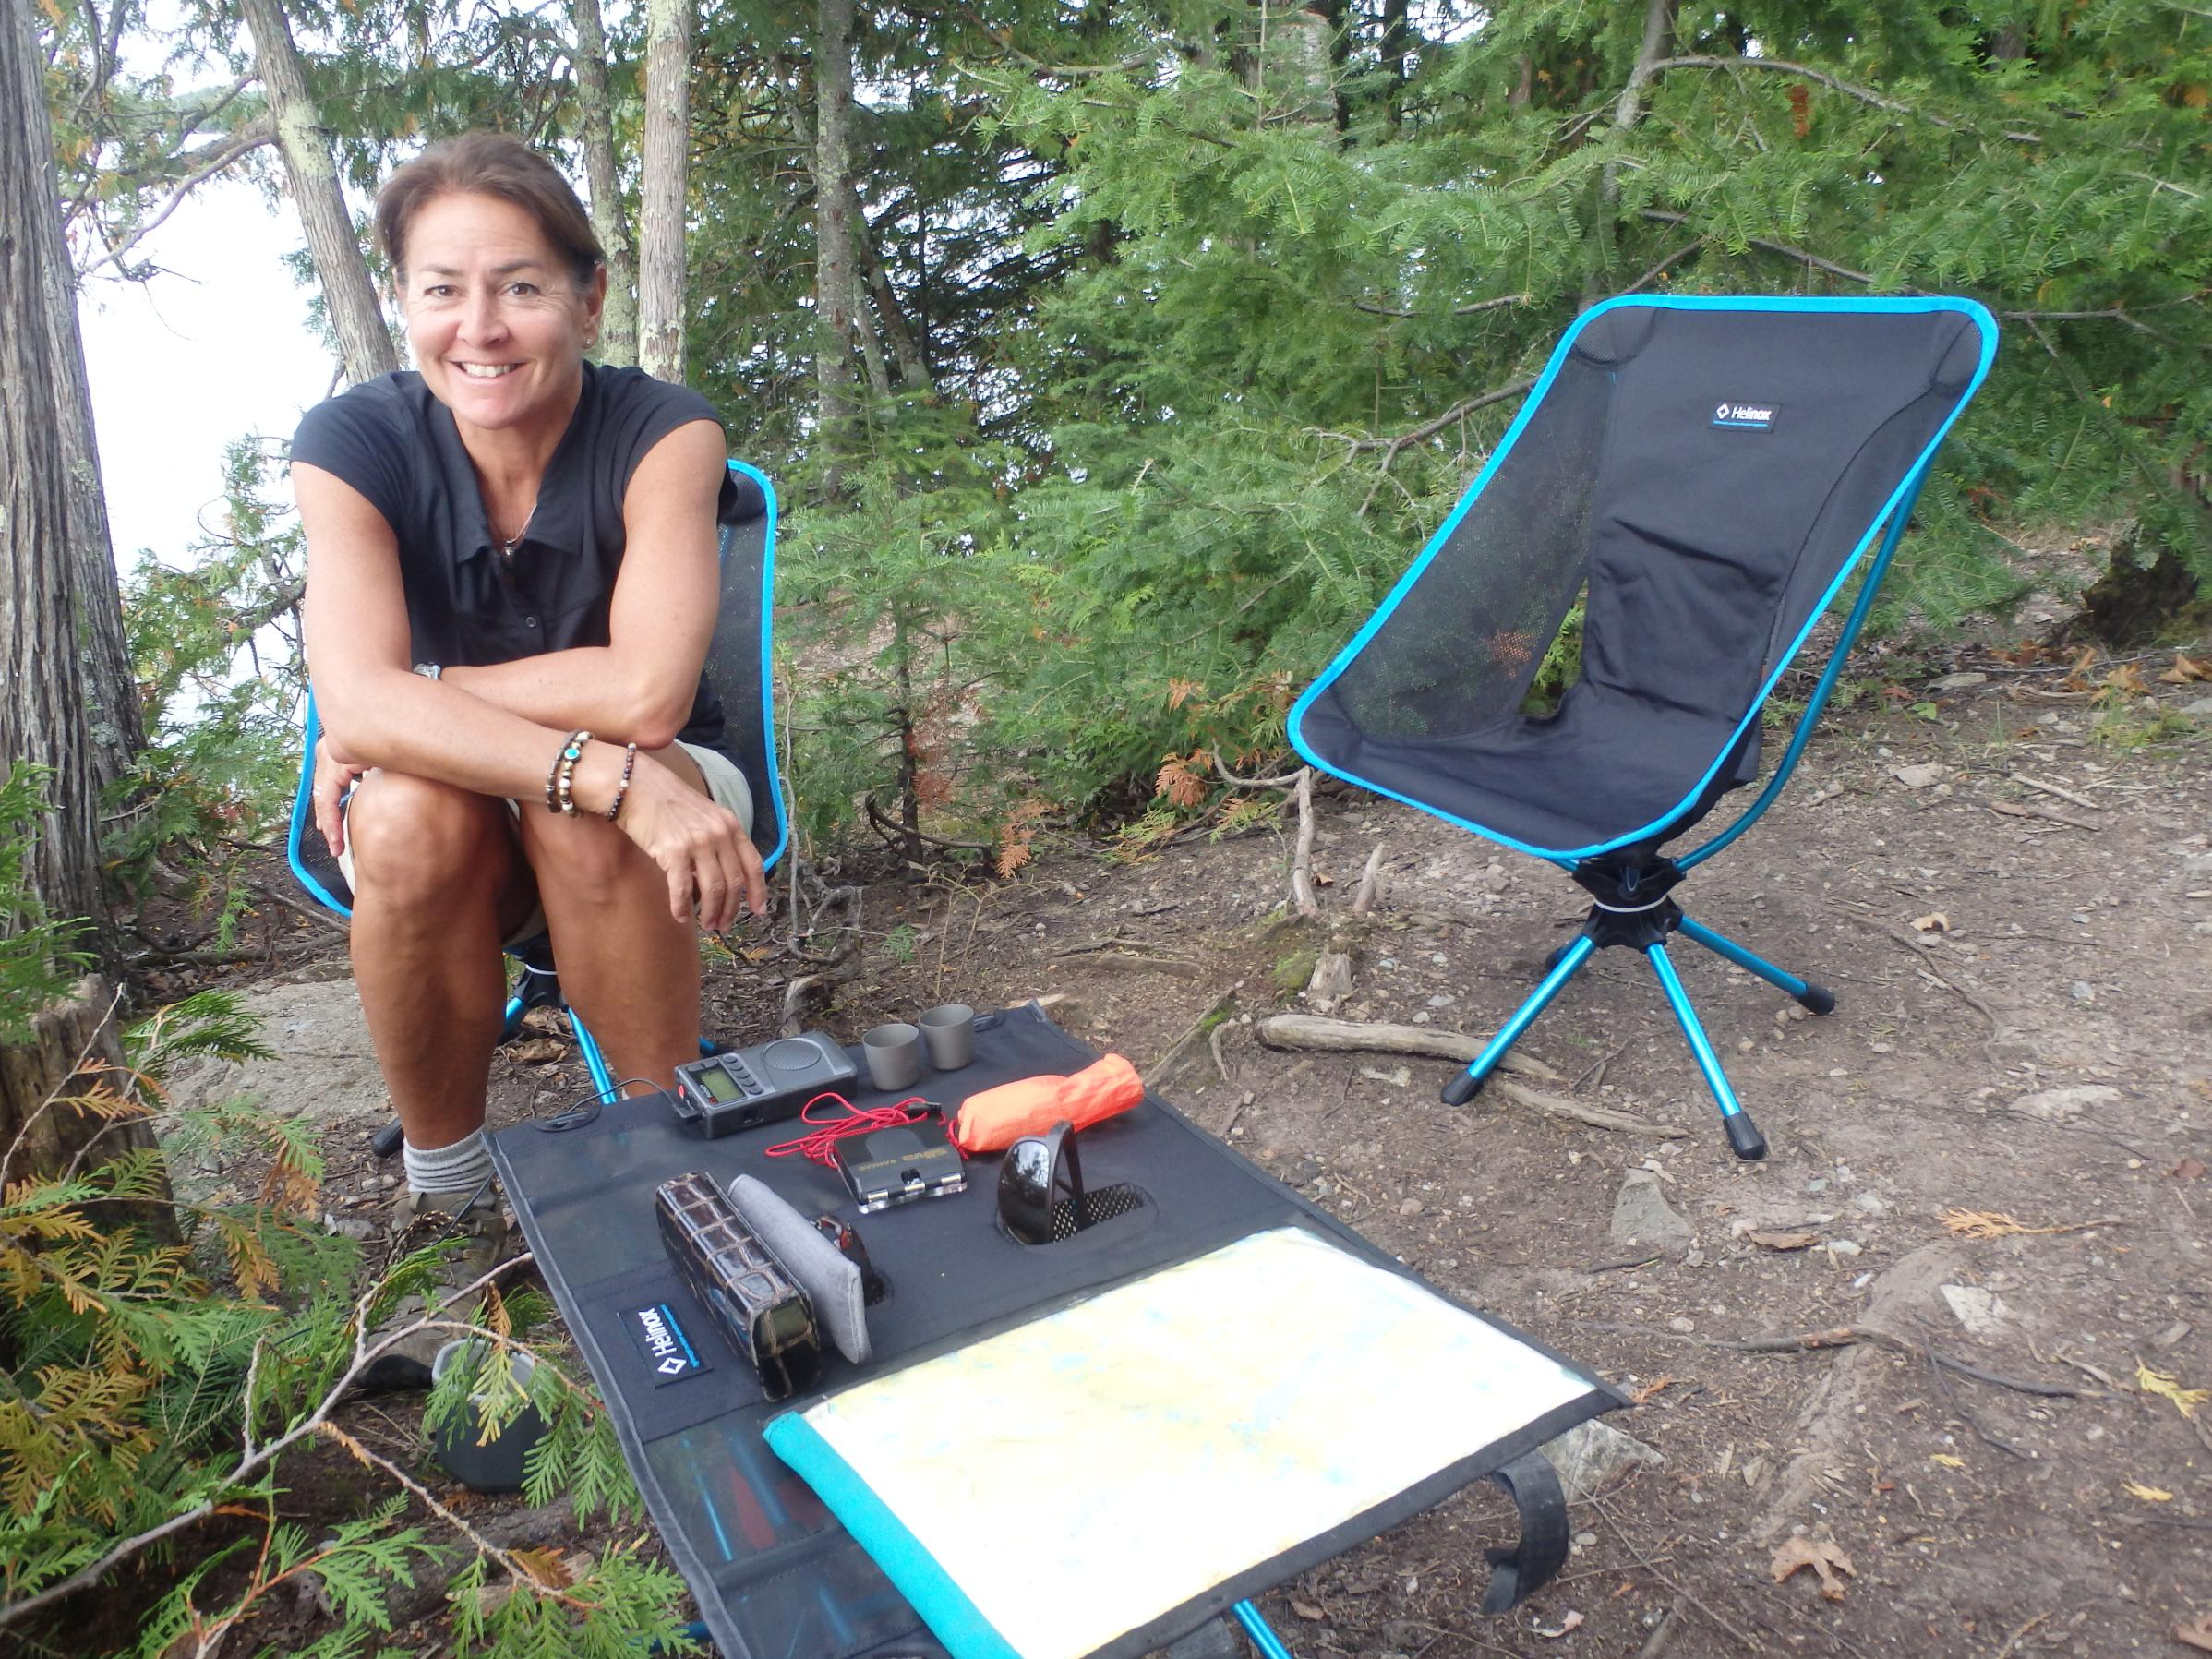 Superb Bwca A Frank Discussion About Camp Furniture Boundary Waters Machost Co Dining Chair Design Ideas Machostcouk